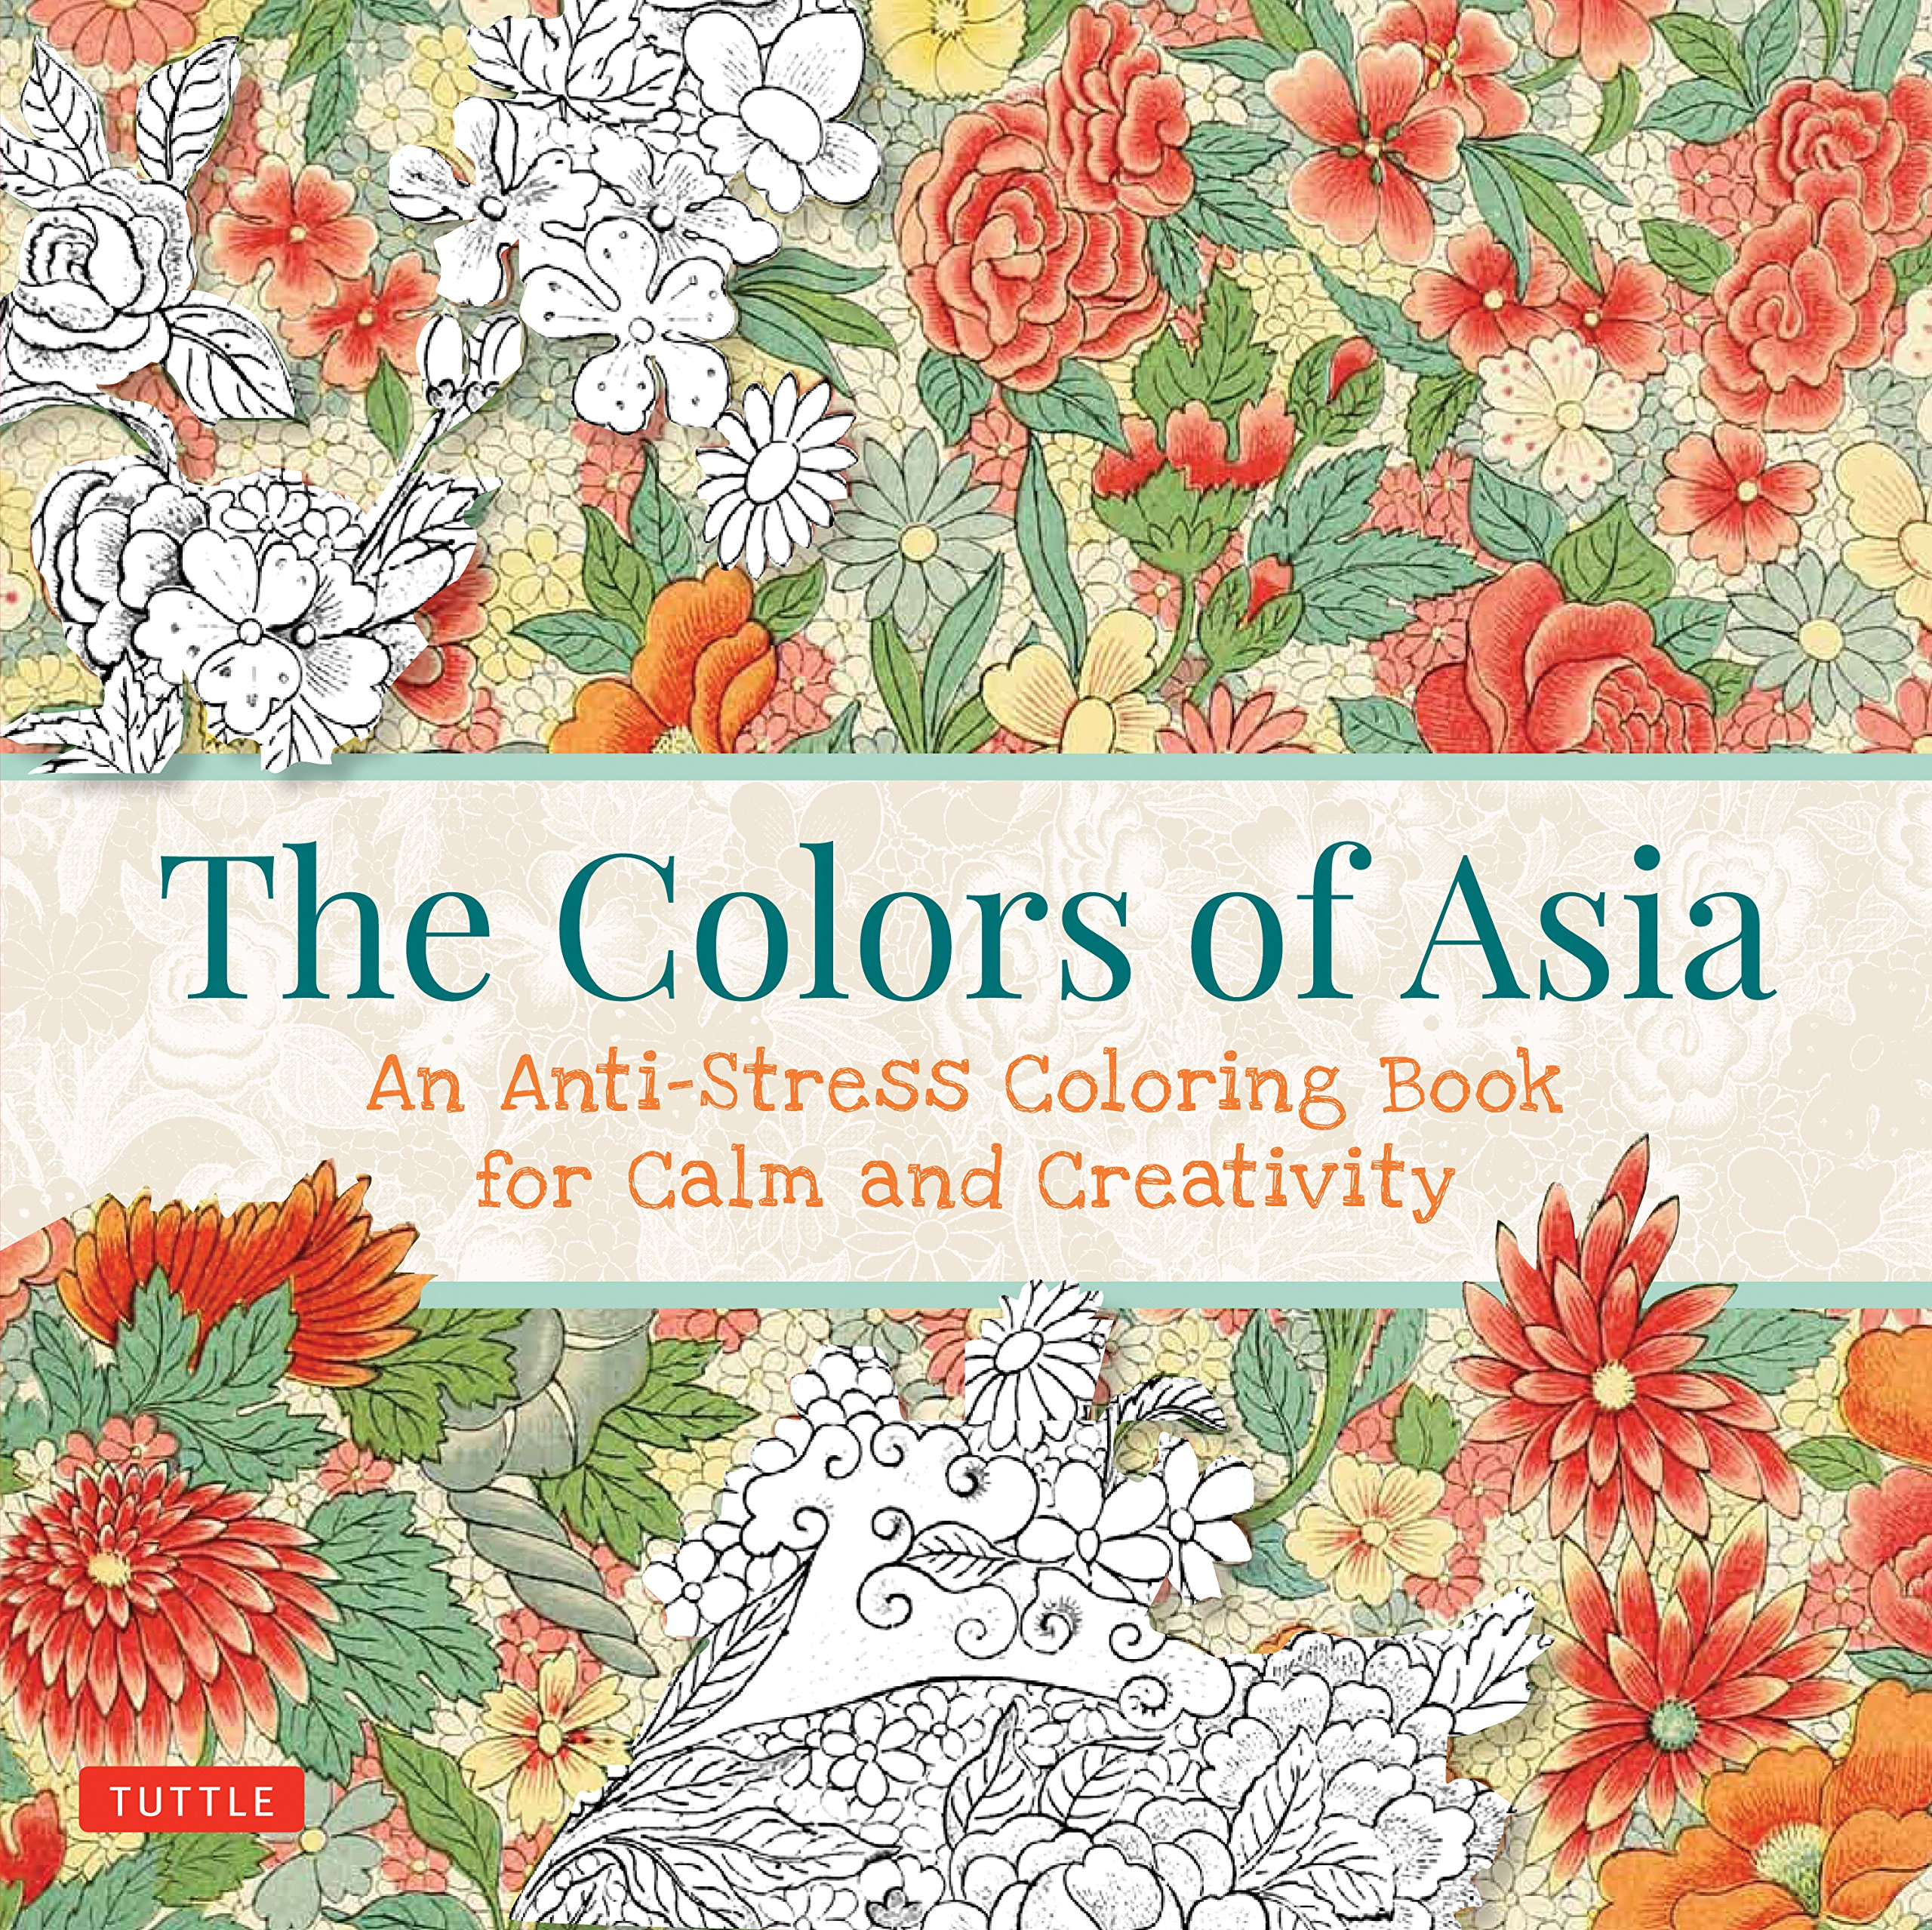 Stress coloring books - The Colors Of Asia An Anti Stress Coloring Book For Calm And Creativity Tuttle Publishing 9780804846424 Amazon Com Books